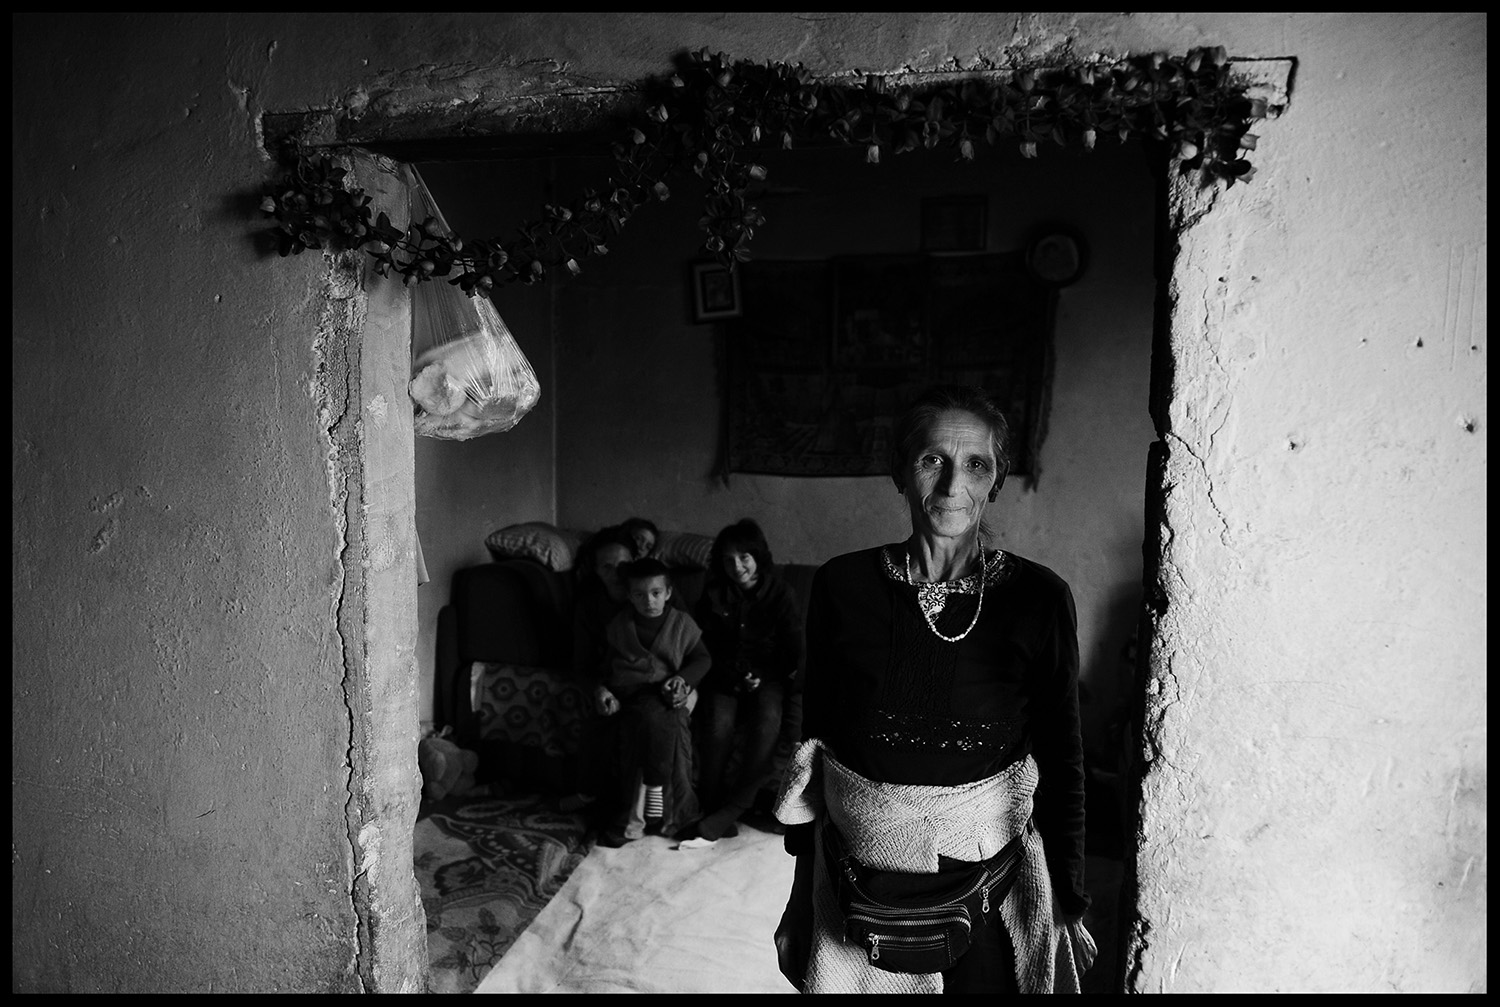 "The mother of twelve children Refija Zahirovic stands at the entrance of twelve square meters room, which is actually their home in Visoko, Bosnia and Herzegovina. Without bathroom and basic living conditions, she tries to motivate her children to continue their education. Of the twelve children, only one so far has completed elementary school. Mother Refija is determined that the younger, four of them, have at least eight grades of elementary school. According to official data, Roma are almost 100% unemployed. Whether a Roma child attends school largely dependent on parents, because some, thanks to education, manage to get out of the ""vicious circle of poverty"", while others remain on the margins without any financial or health security."